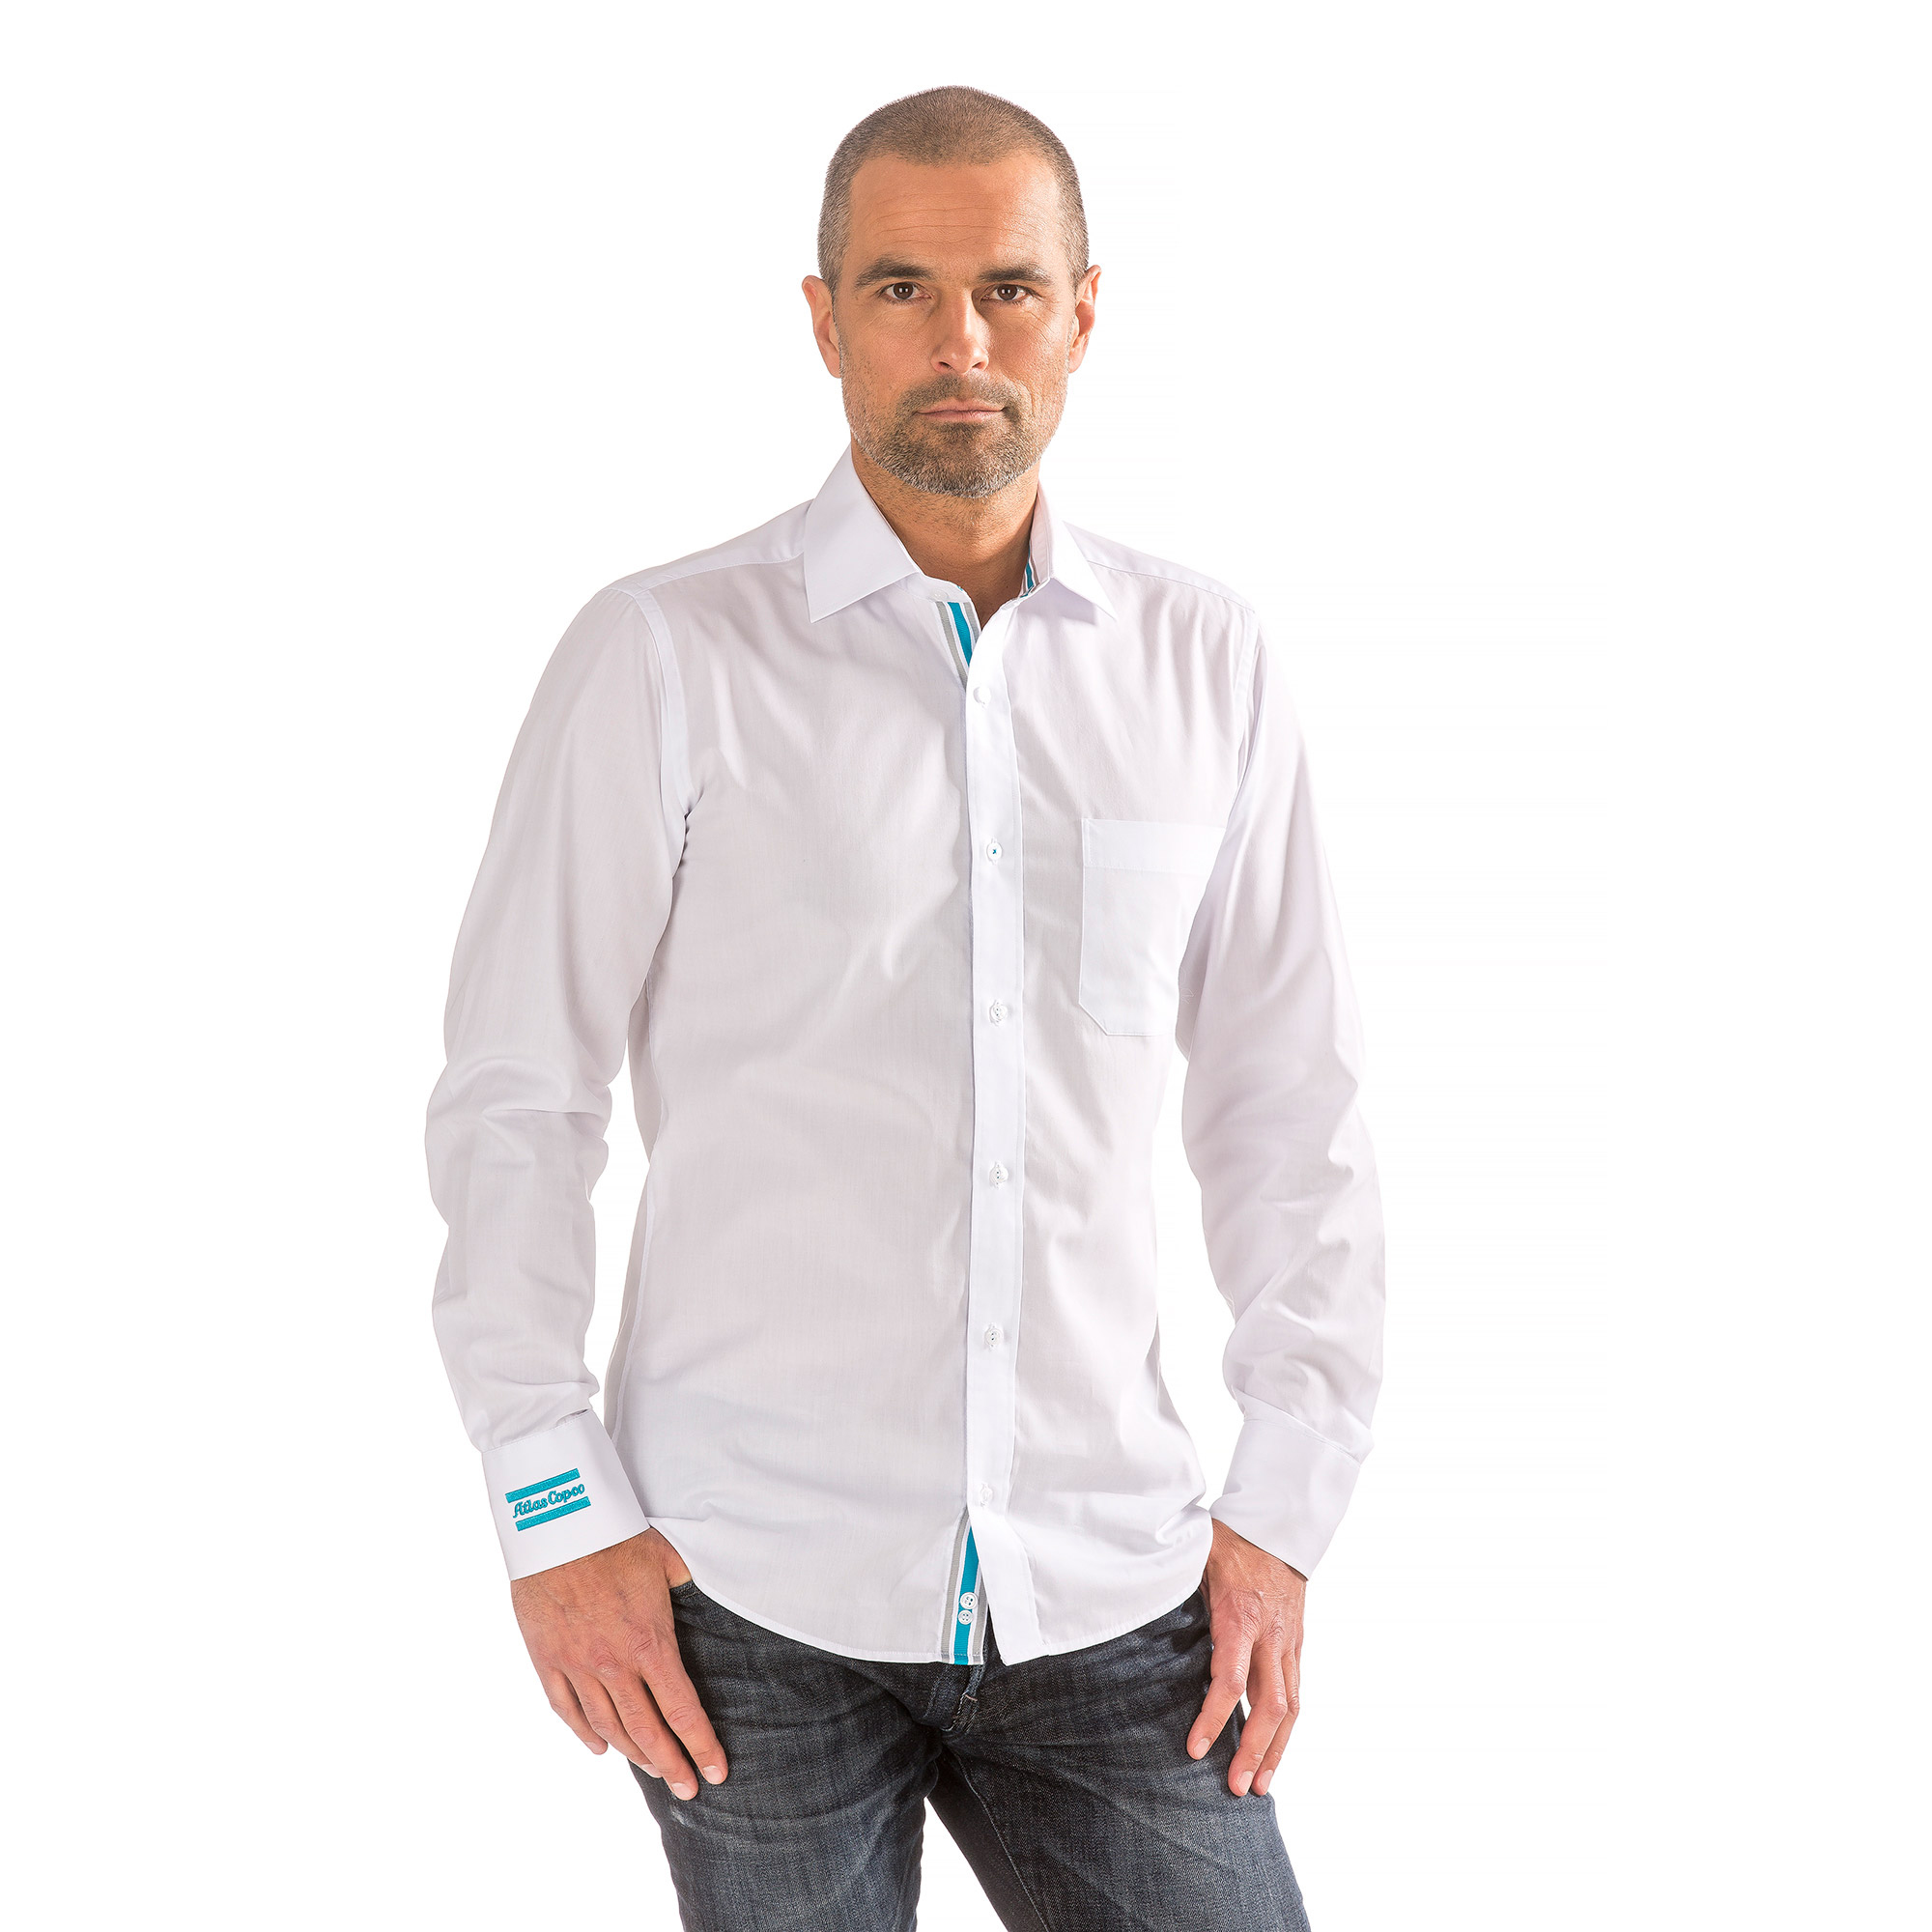 This versatile shirt gives you the possibility of wearing it strictly as business white or as something more casual. Details such as woven ribbons on the inside collar, placket, and cuffs makes this shirt special. The shirt is crafted from cotton and poplin and tailored for a comfortable fit.